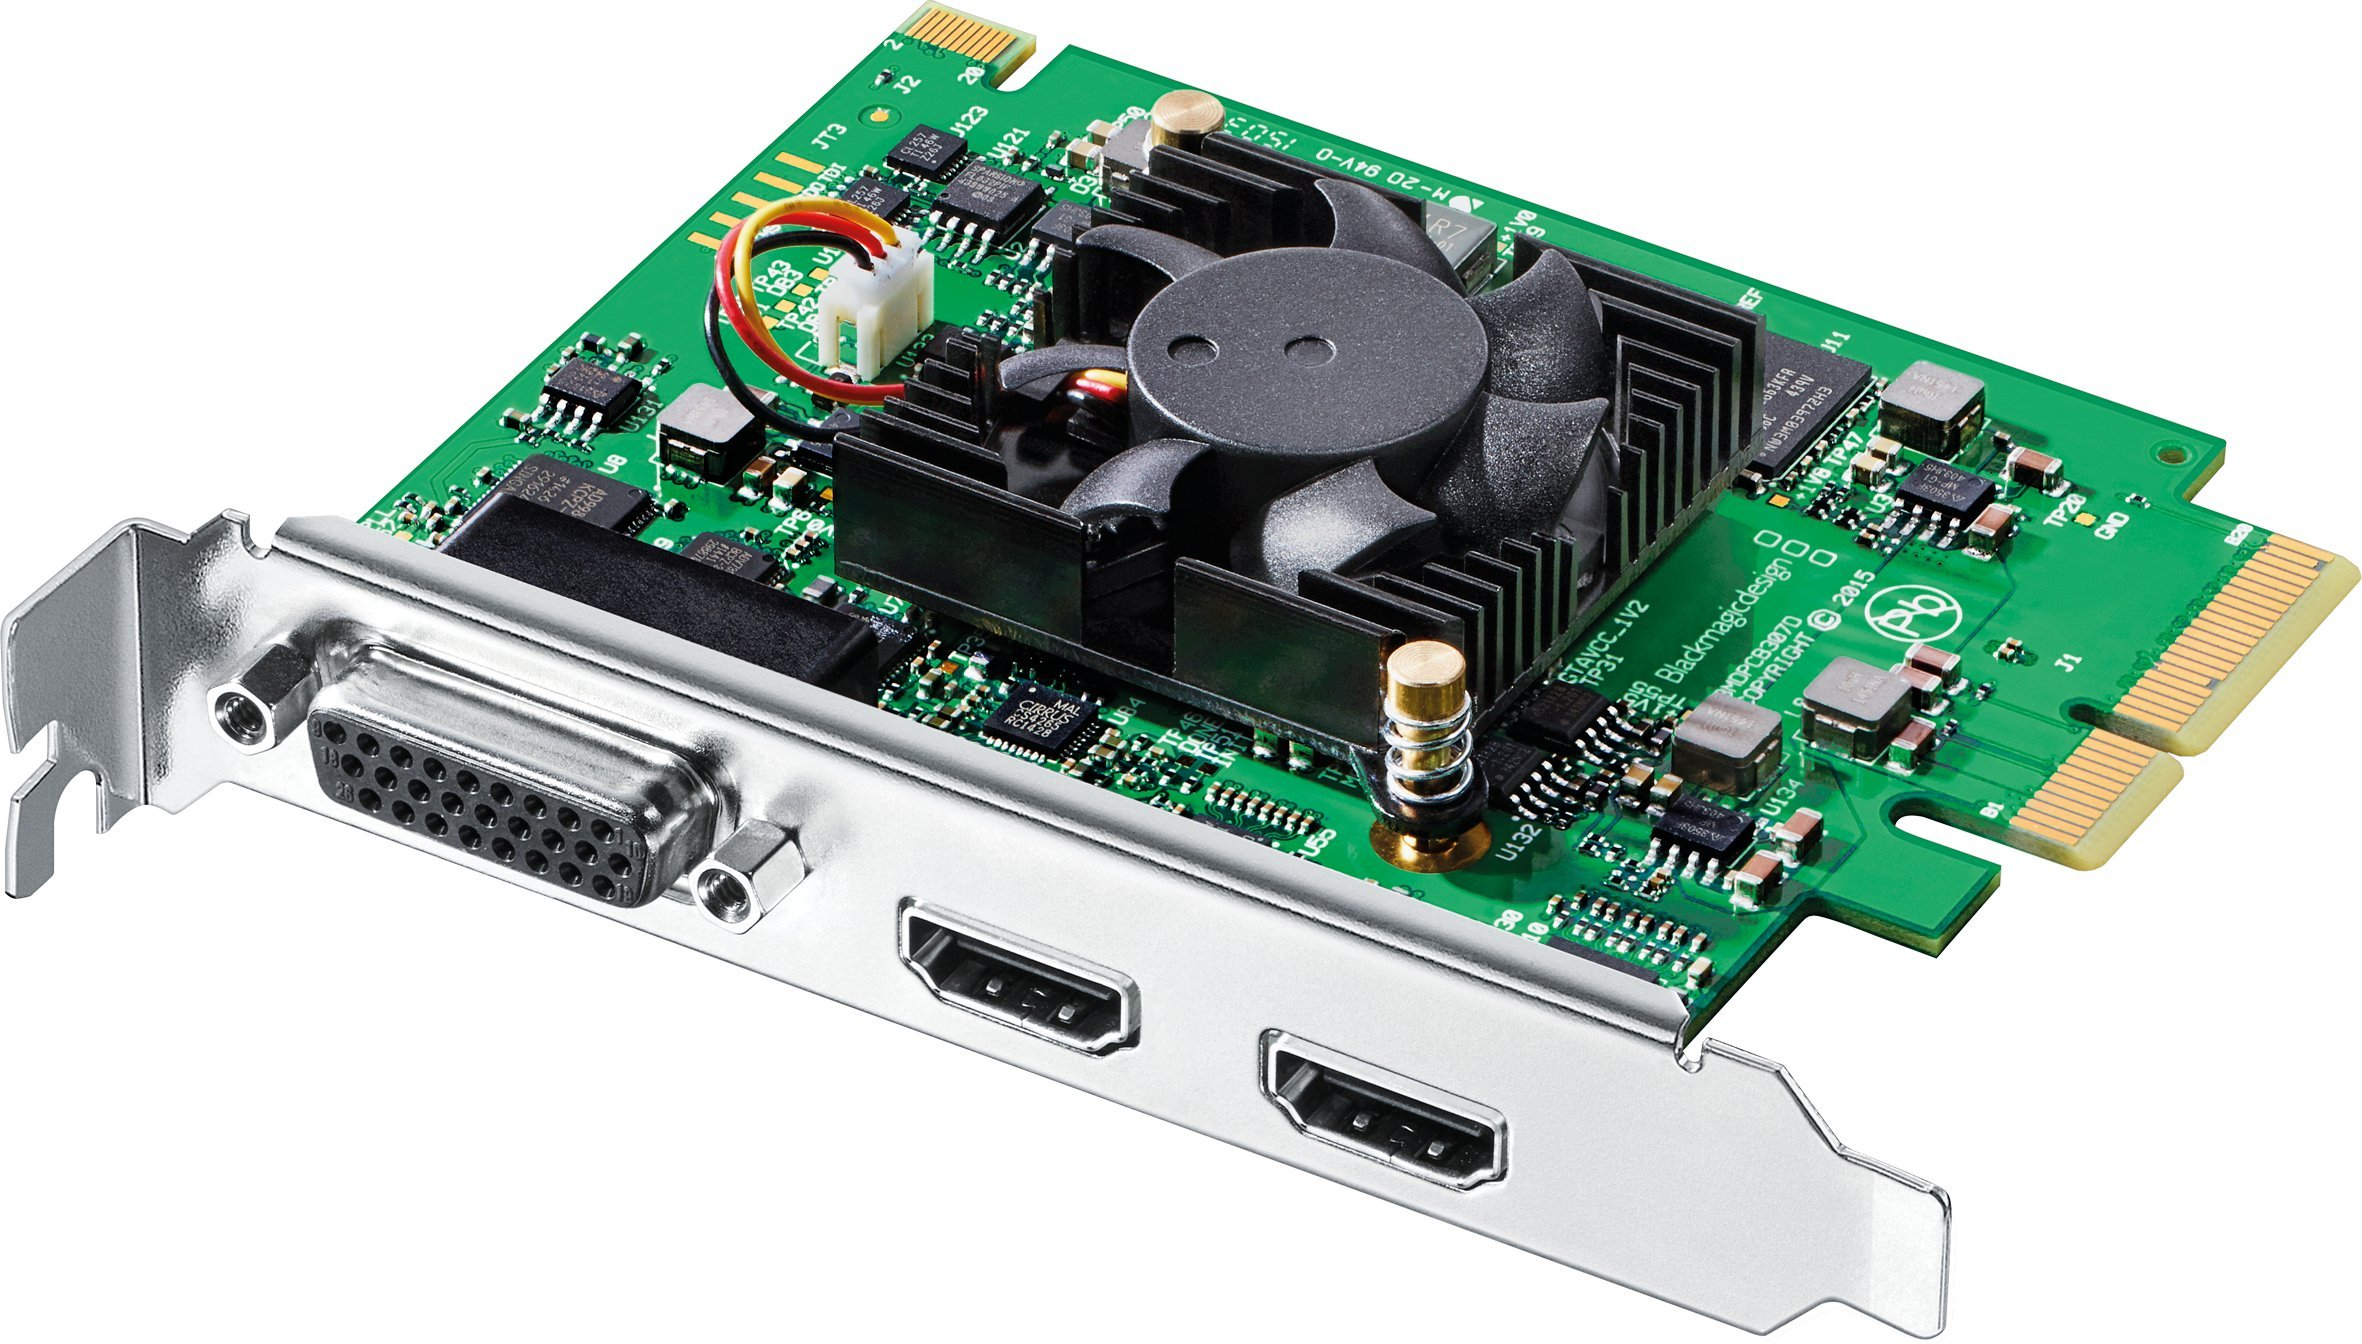 Blackmagic Design Intensity Pro 4K Capture & Playback Input/Output Card, Ultra HD at 30fps and 1080p at 60fps by Blackmagic Design